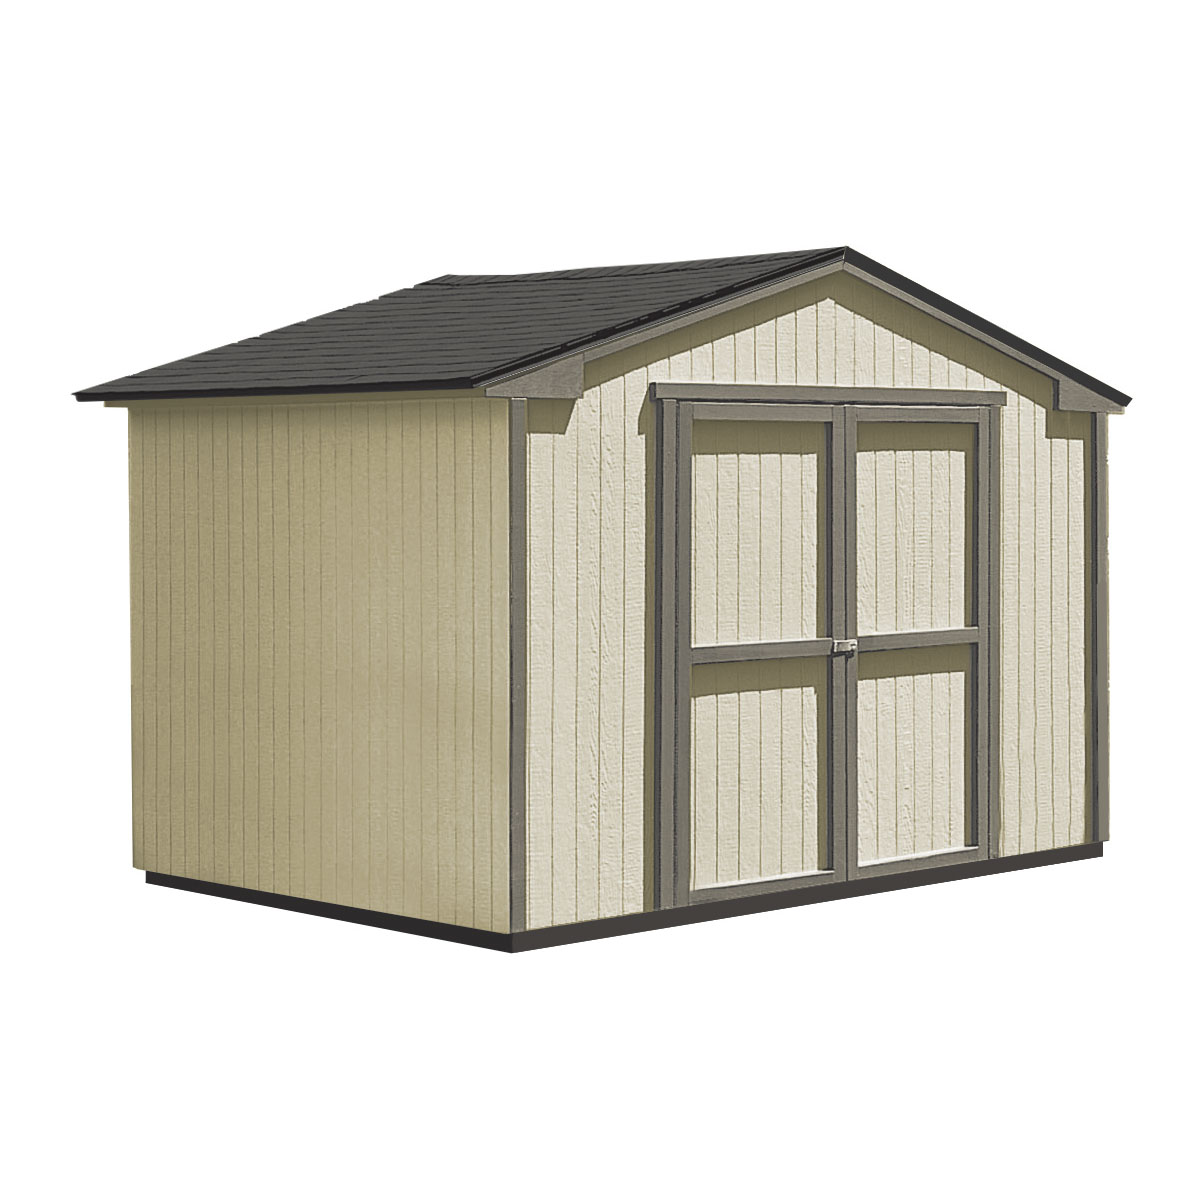 Wood shed for sale lowes storage buildings wooden storage for Garden shed january sale